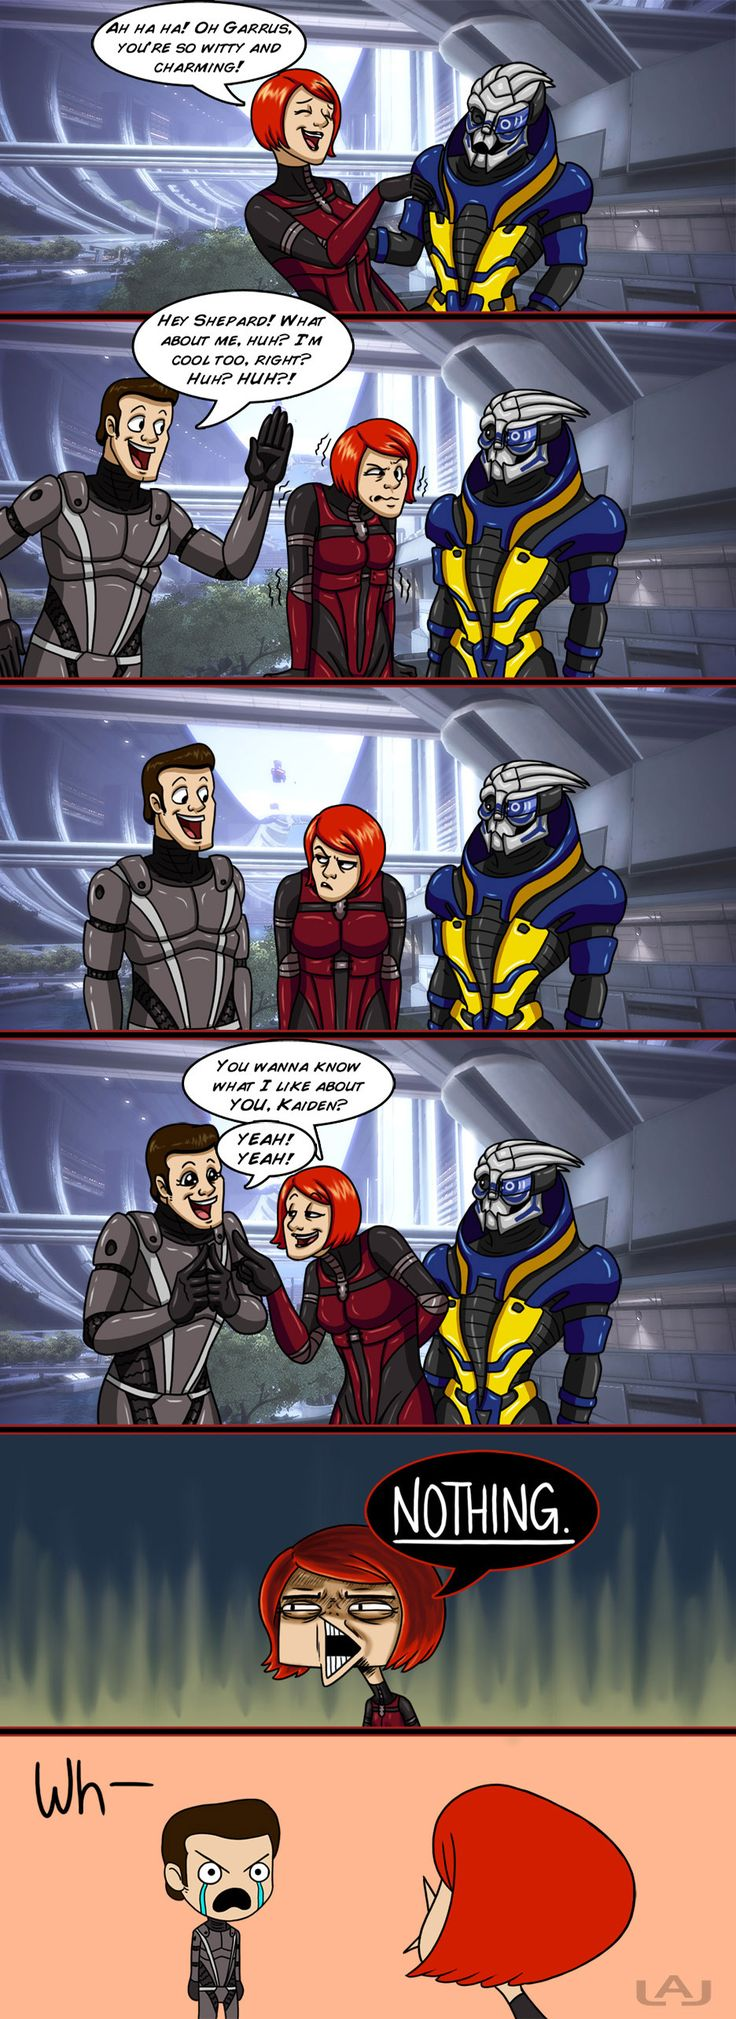 Mass Effect by Red-Flare.deviantart.com on @DeviantArt